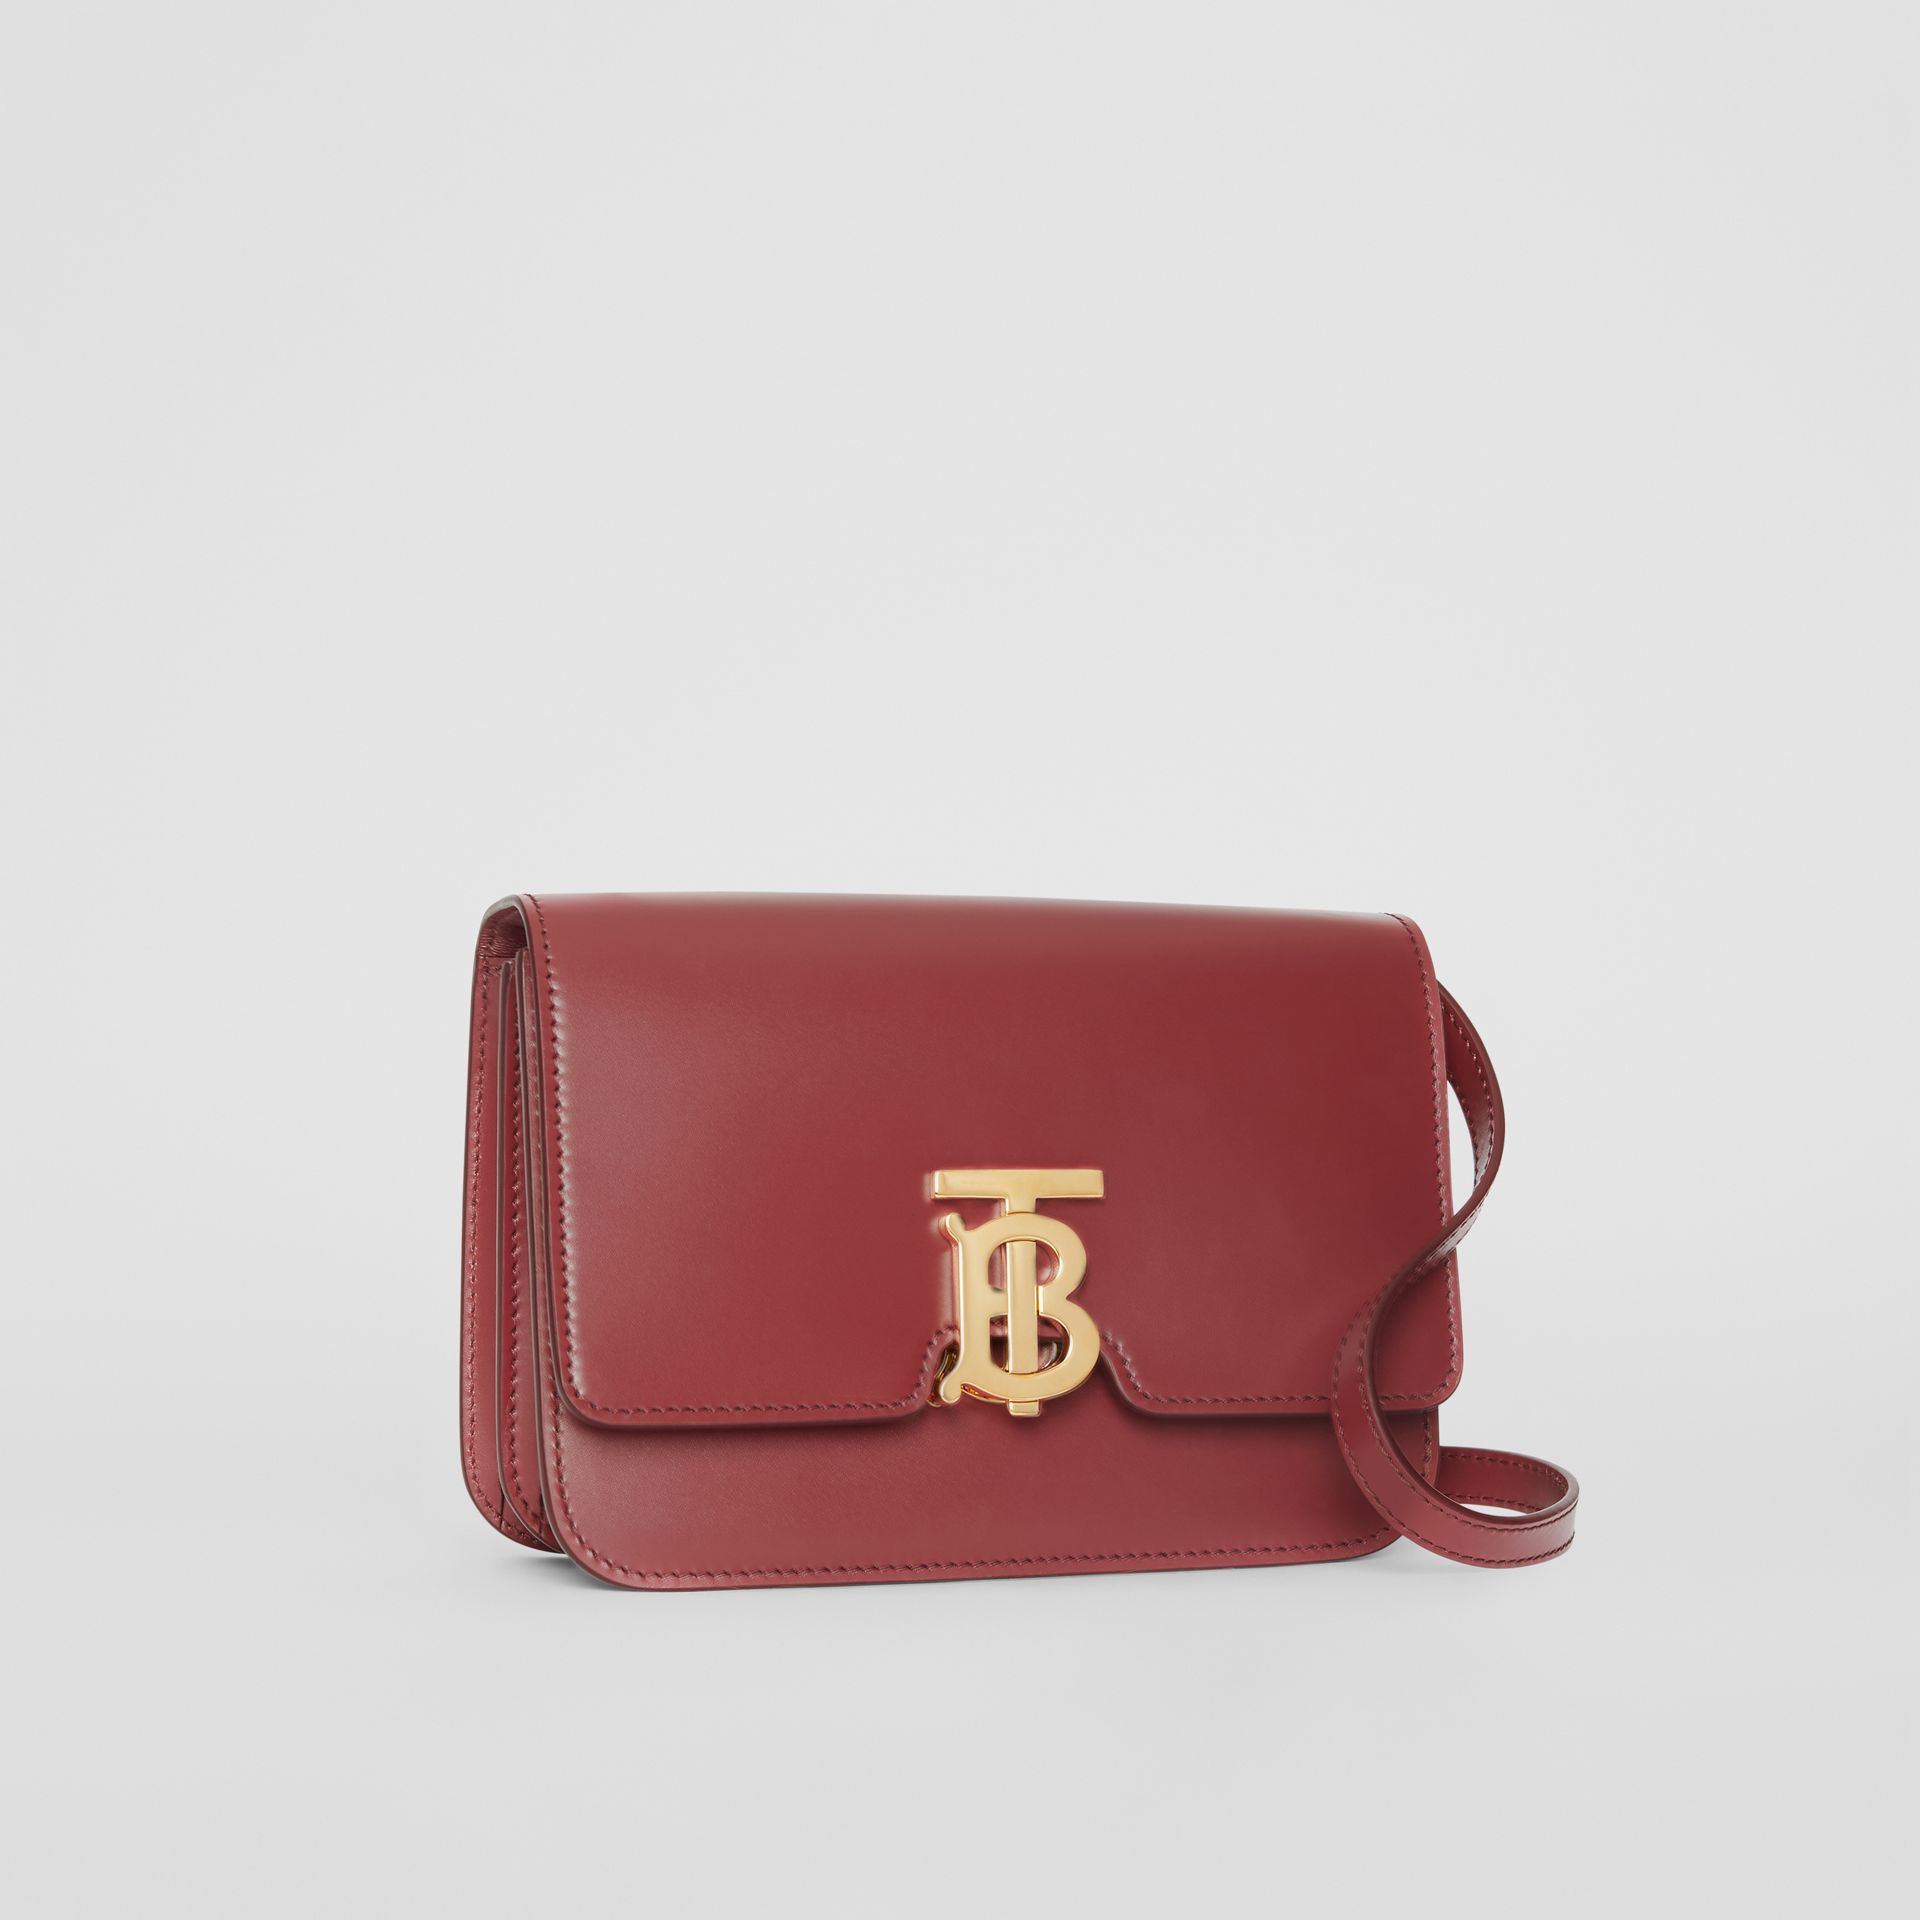 Small Leather TB Bag in Crimson - Women | Burberry - gallery image 6